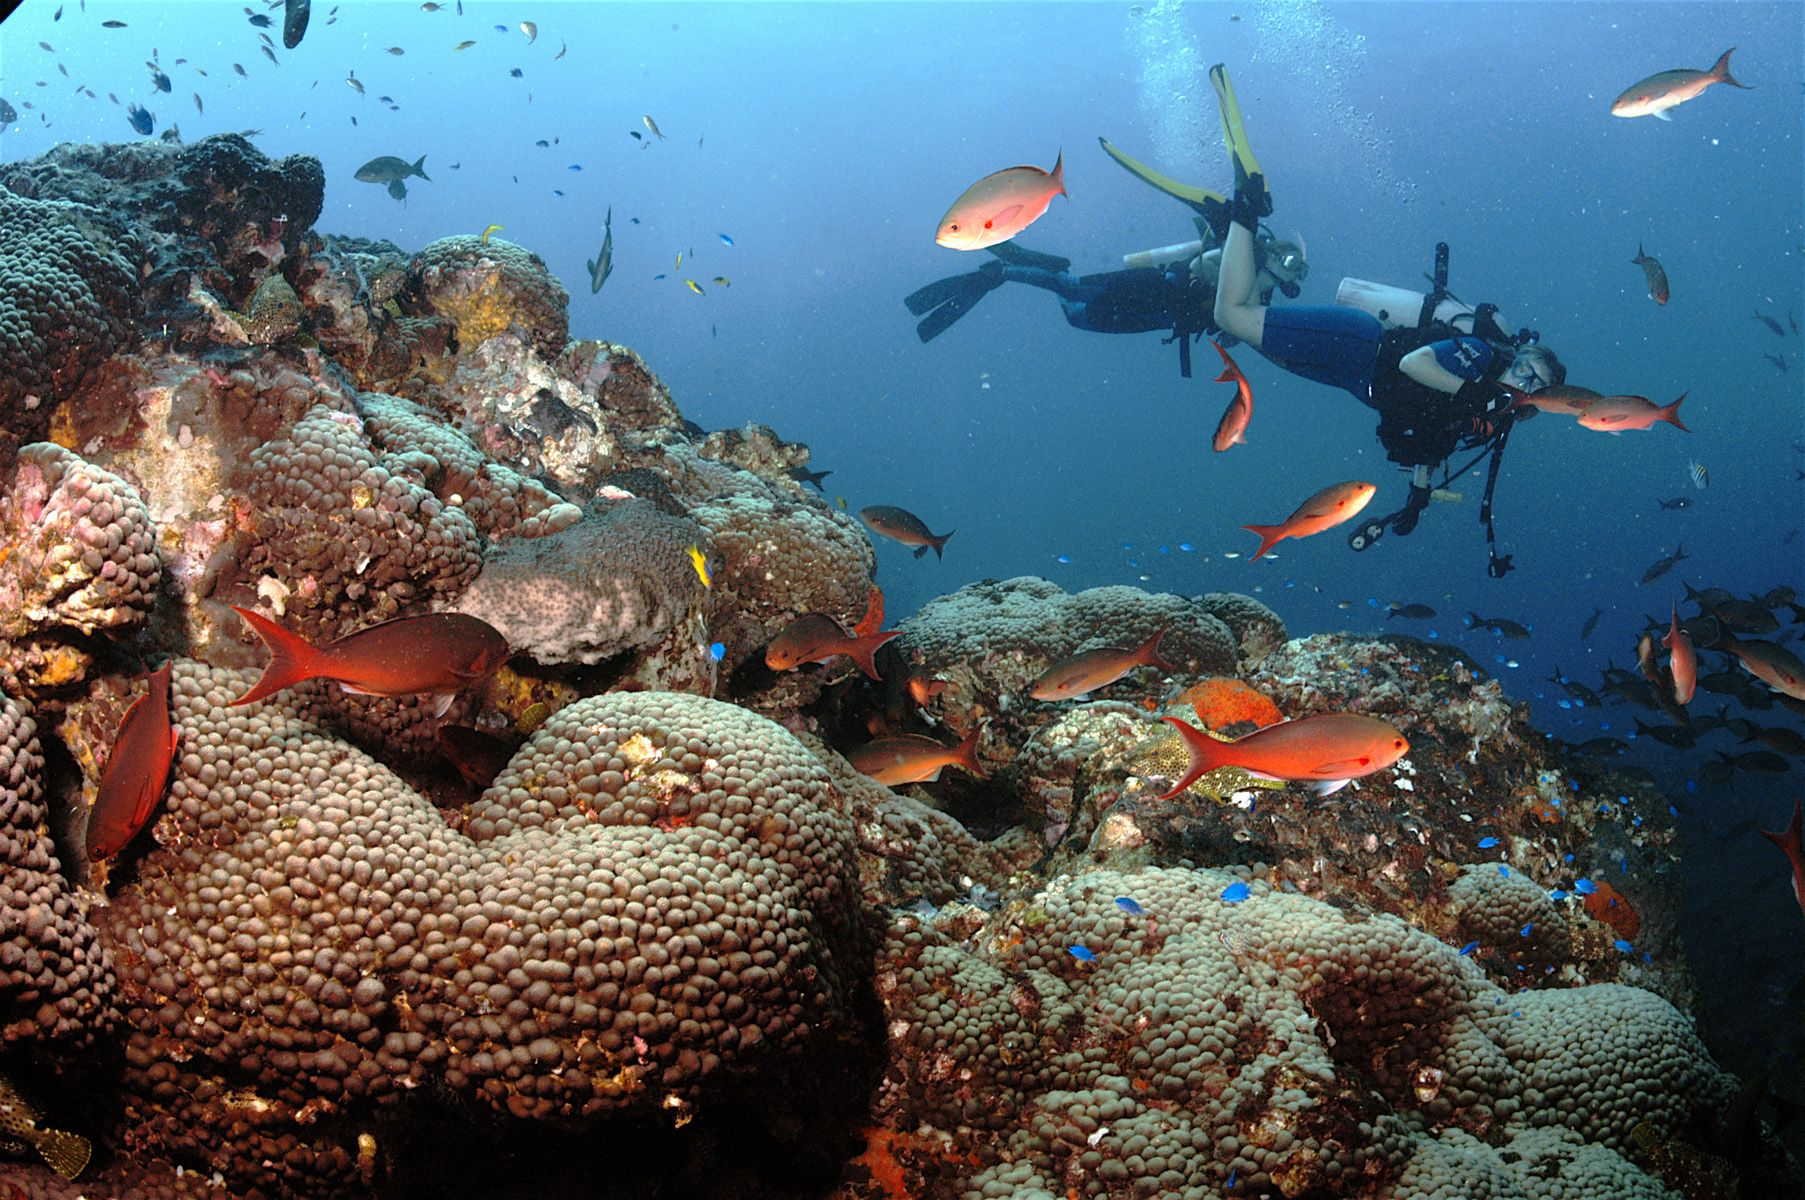 Scuba Dive The Flower Garden Banks National Marine Sanctuary Located 70 To 115 Miles Off The